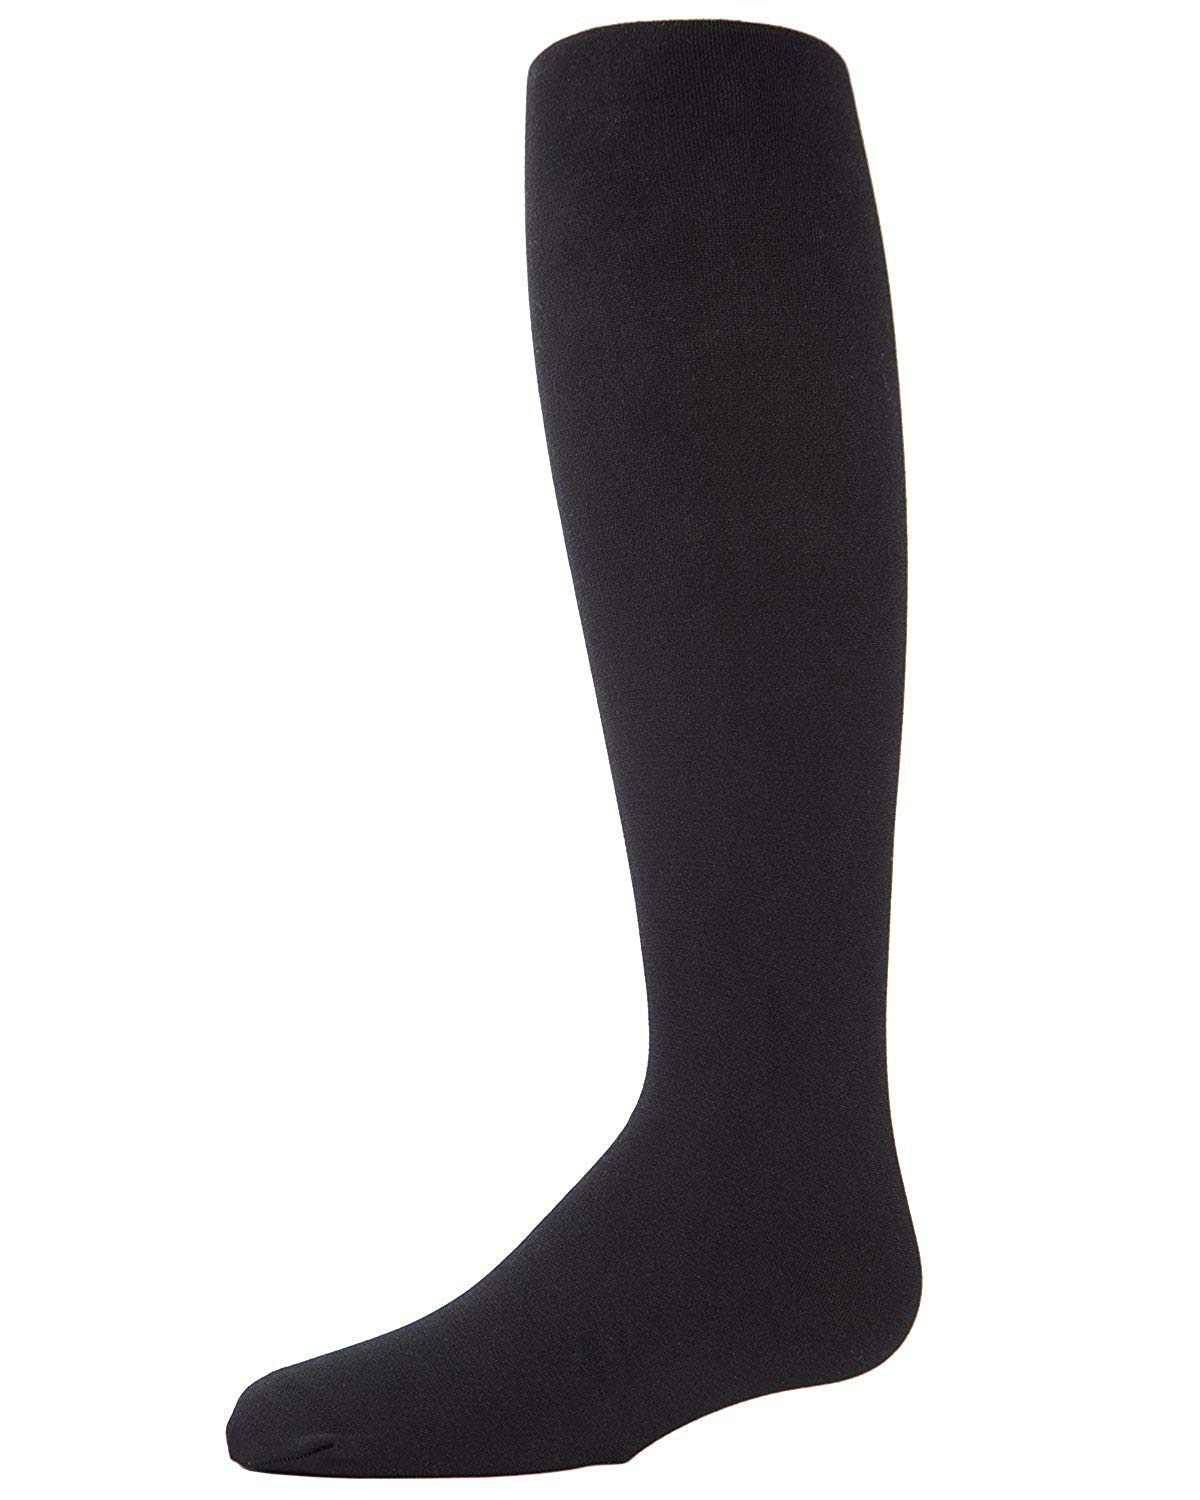 2e6456397af73 Get Quotations · MeMoi Girls Fleece Lined Tights   Warm Tights for Girls